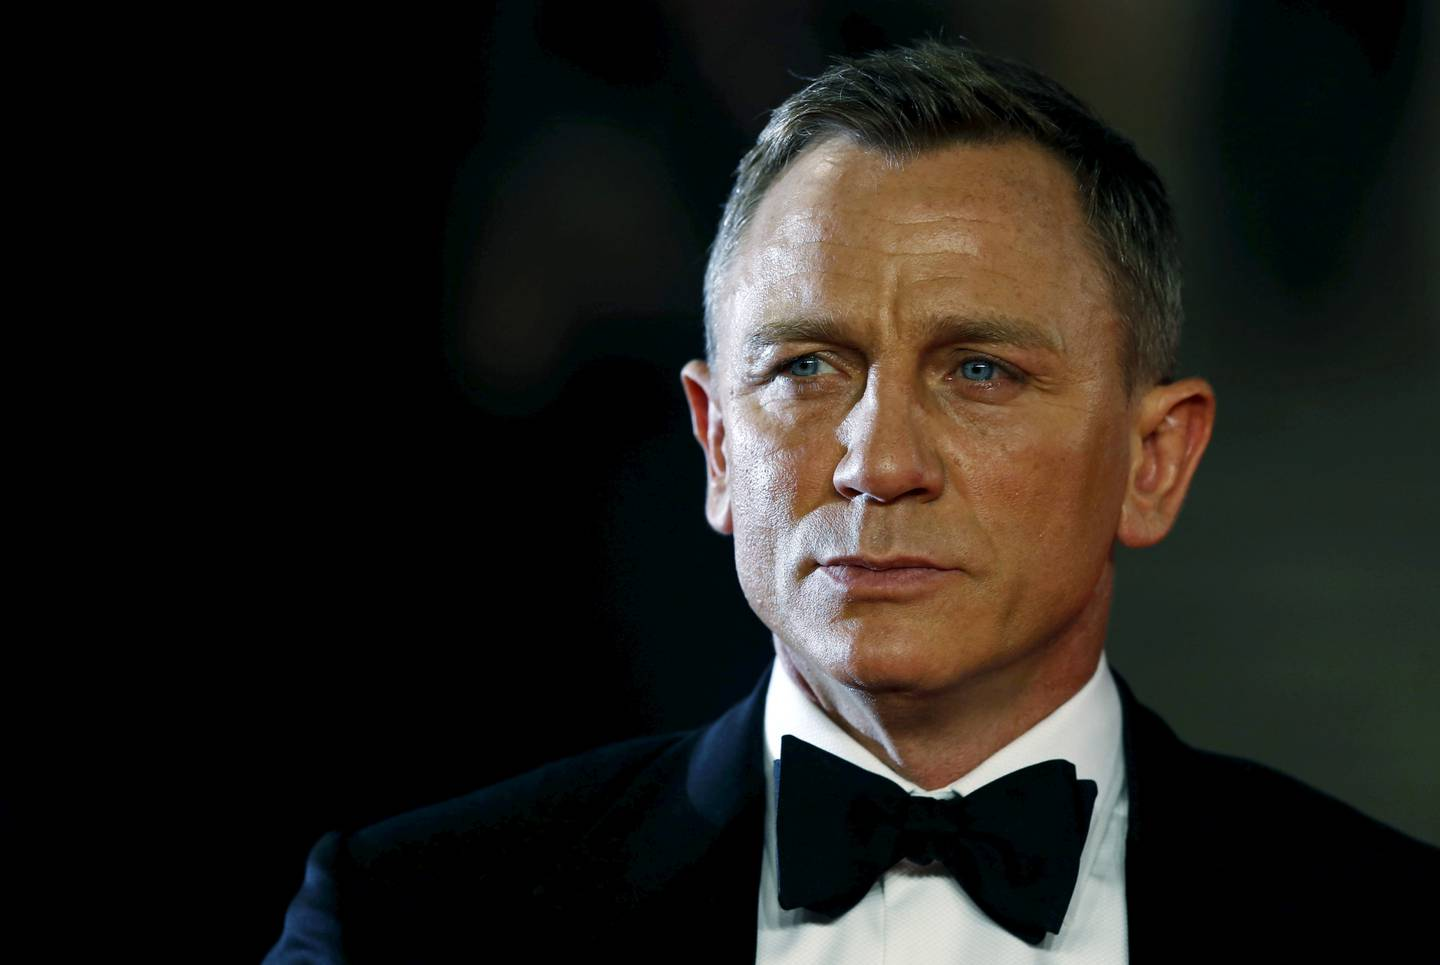 """FILE PHOTO: Daniel Craig poses for photographers as he attends the world premiere of the new James Bond 007 film """"Spectre"""" at the Royal Albert Hall in London, Britain, October 26, 2015. REUTERS/Luke MacGregor/File Photo"""